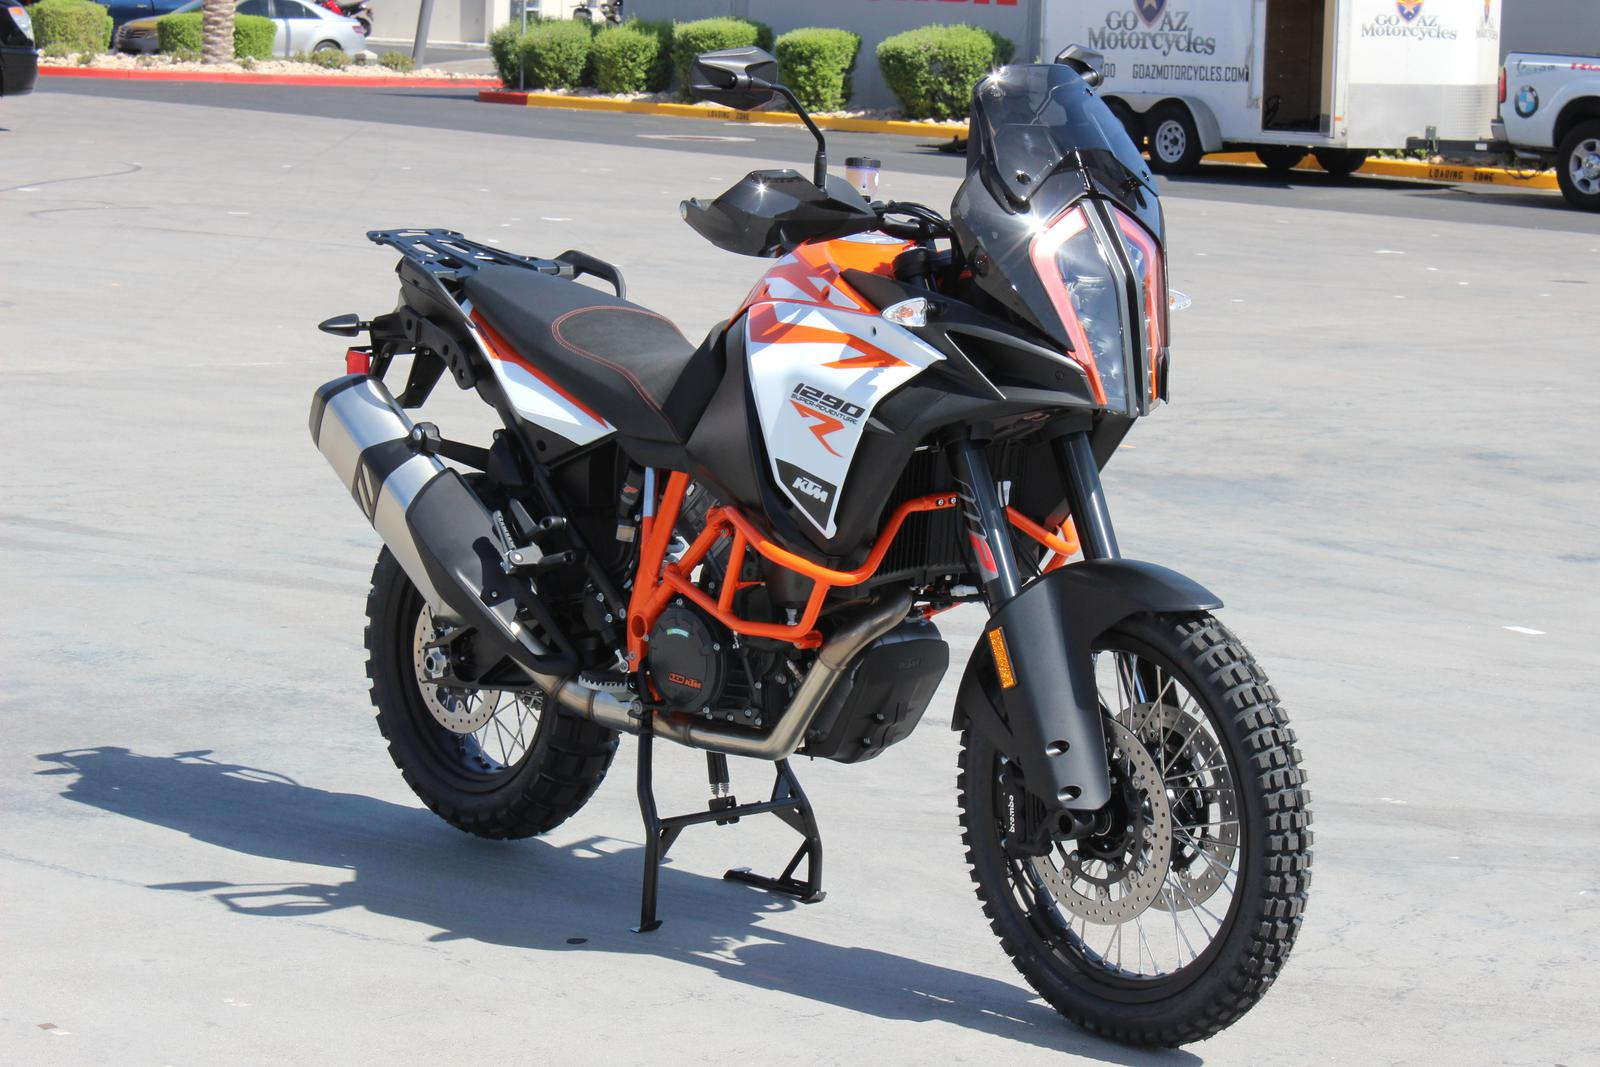 2017 ktm 1290 super adventure r for sale in scottsdale, az | go az